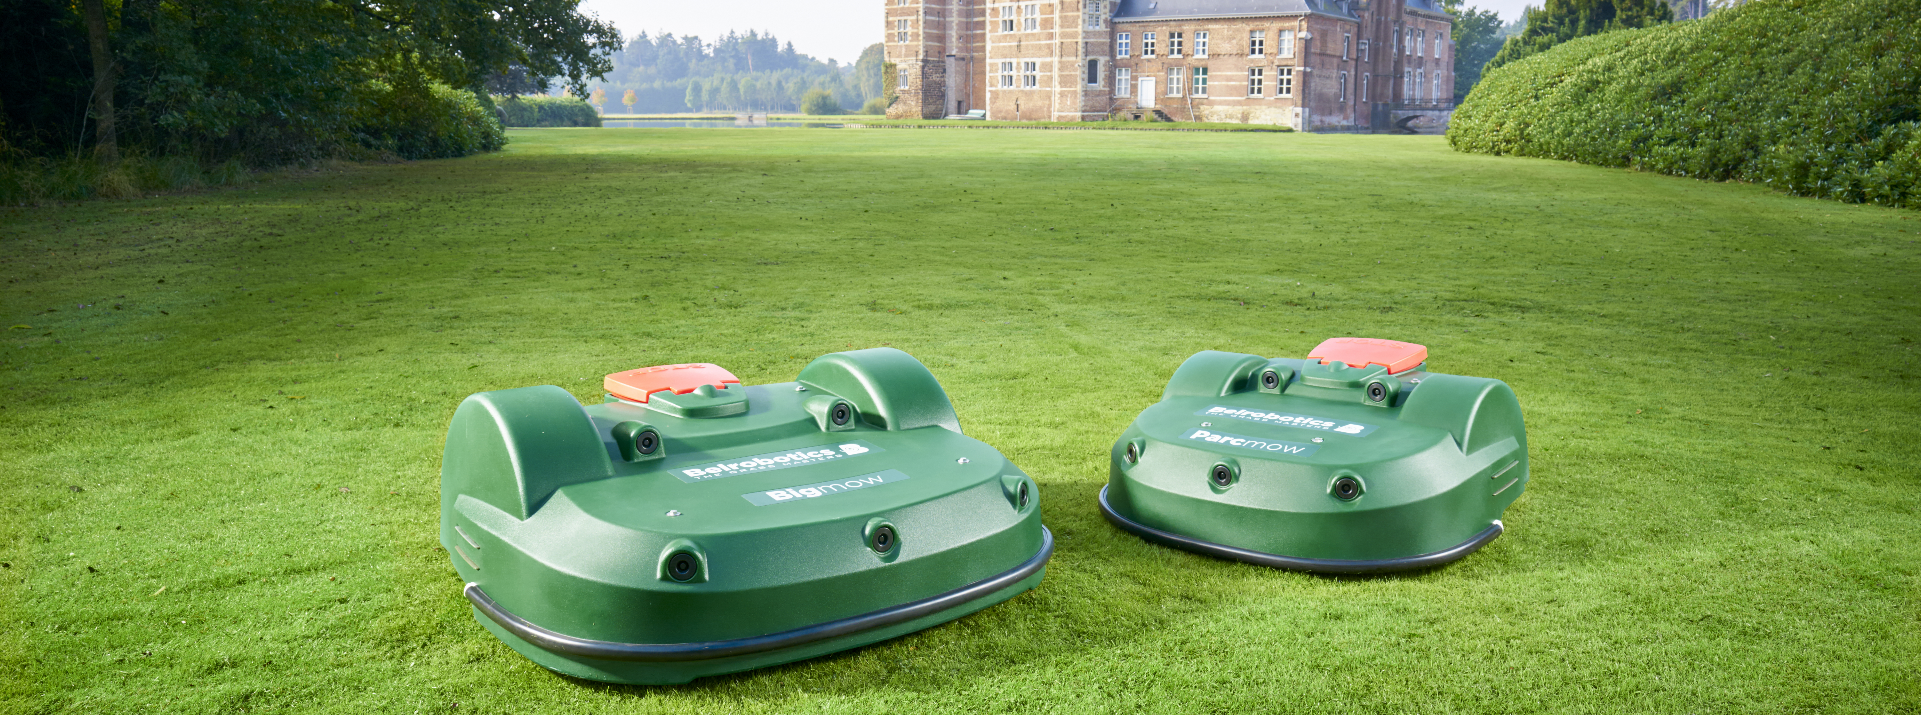 Belrobotics Mowers